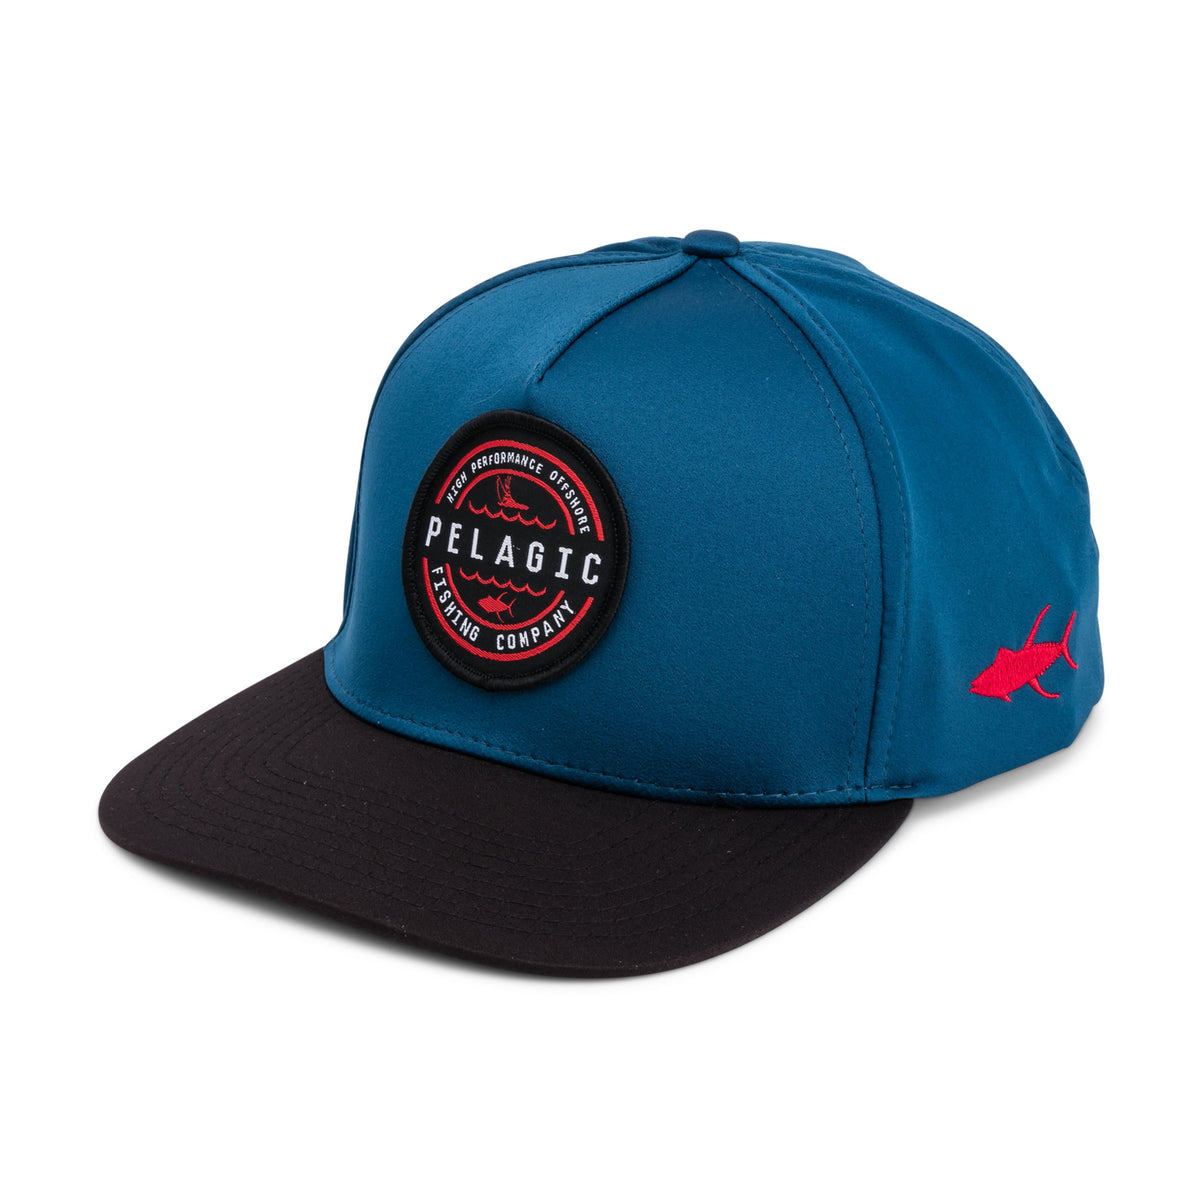 Swells Performance Snapback Hat Big Image - 1